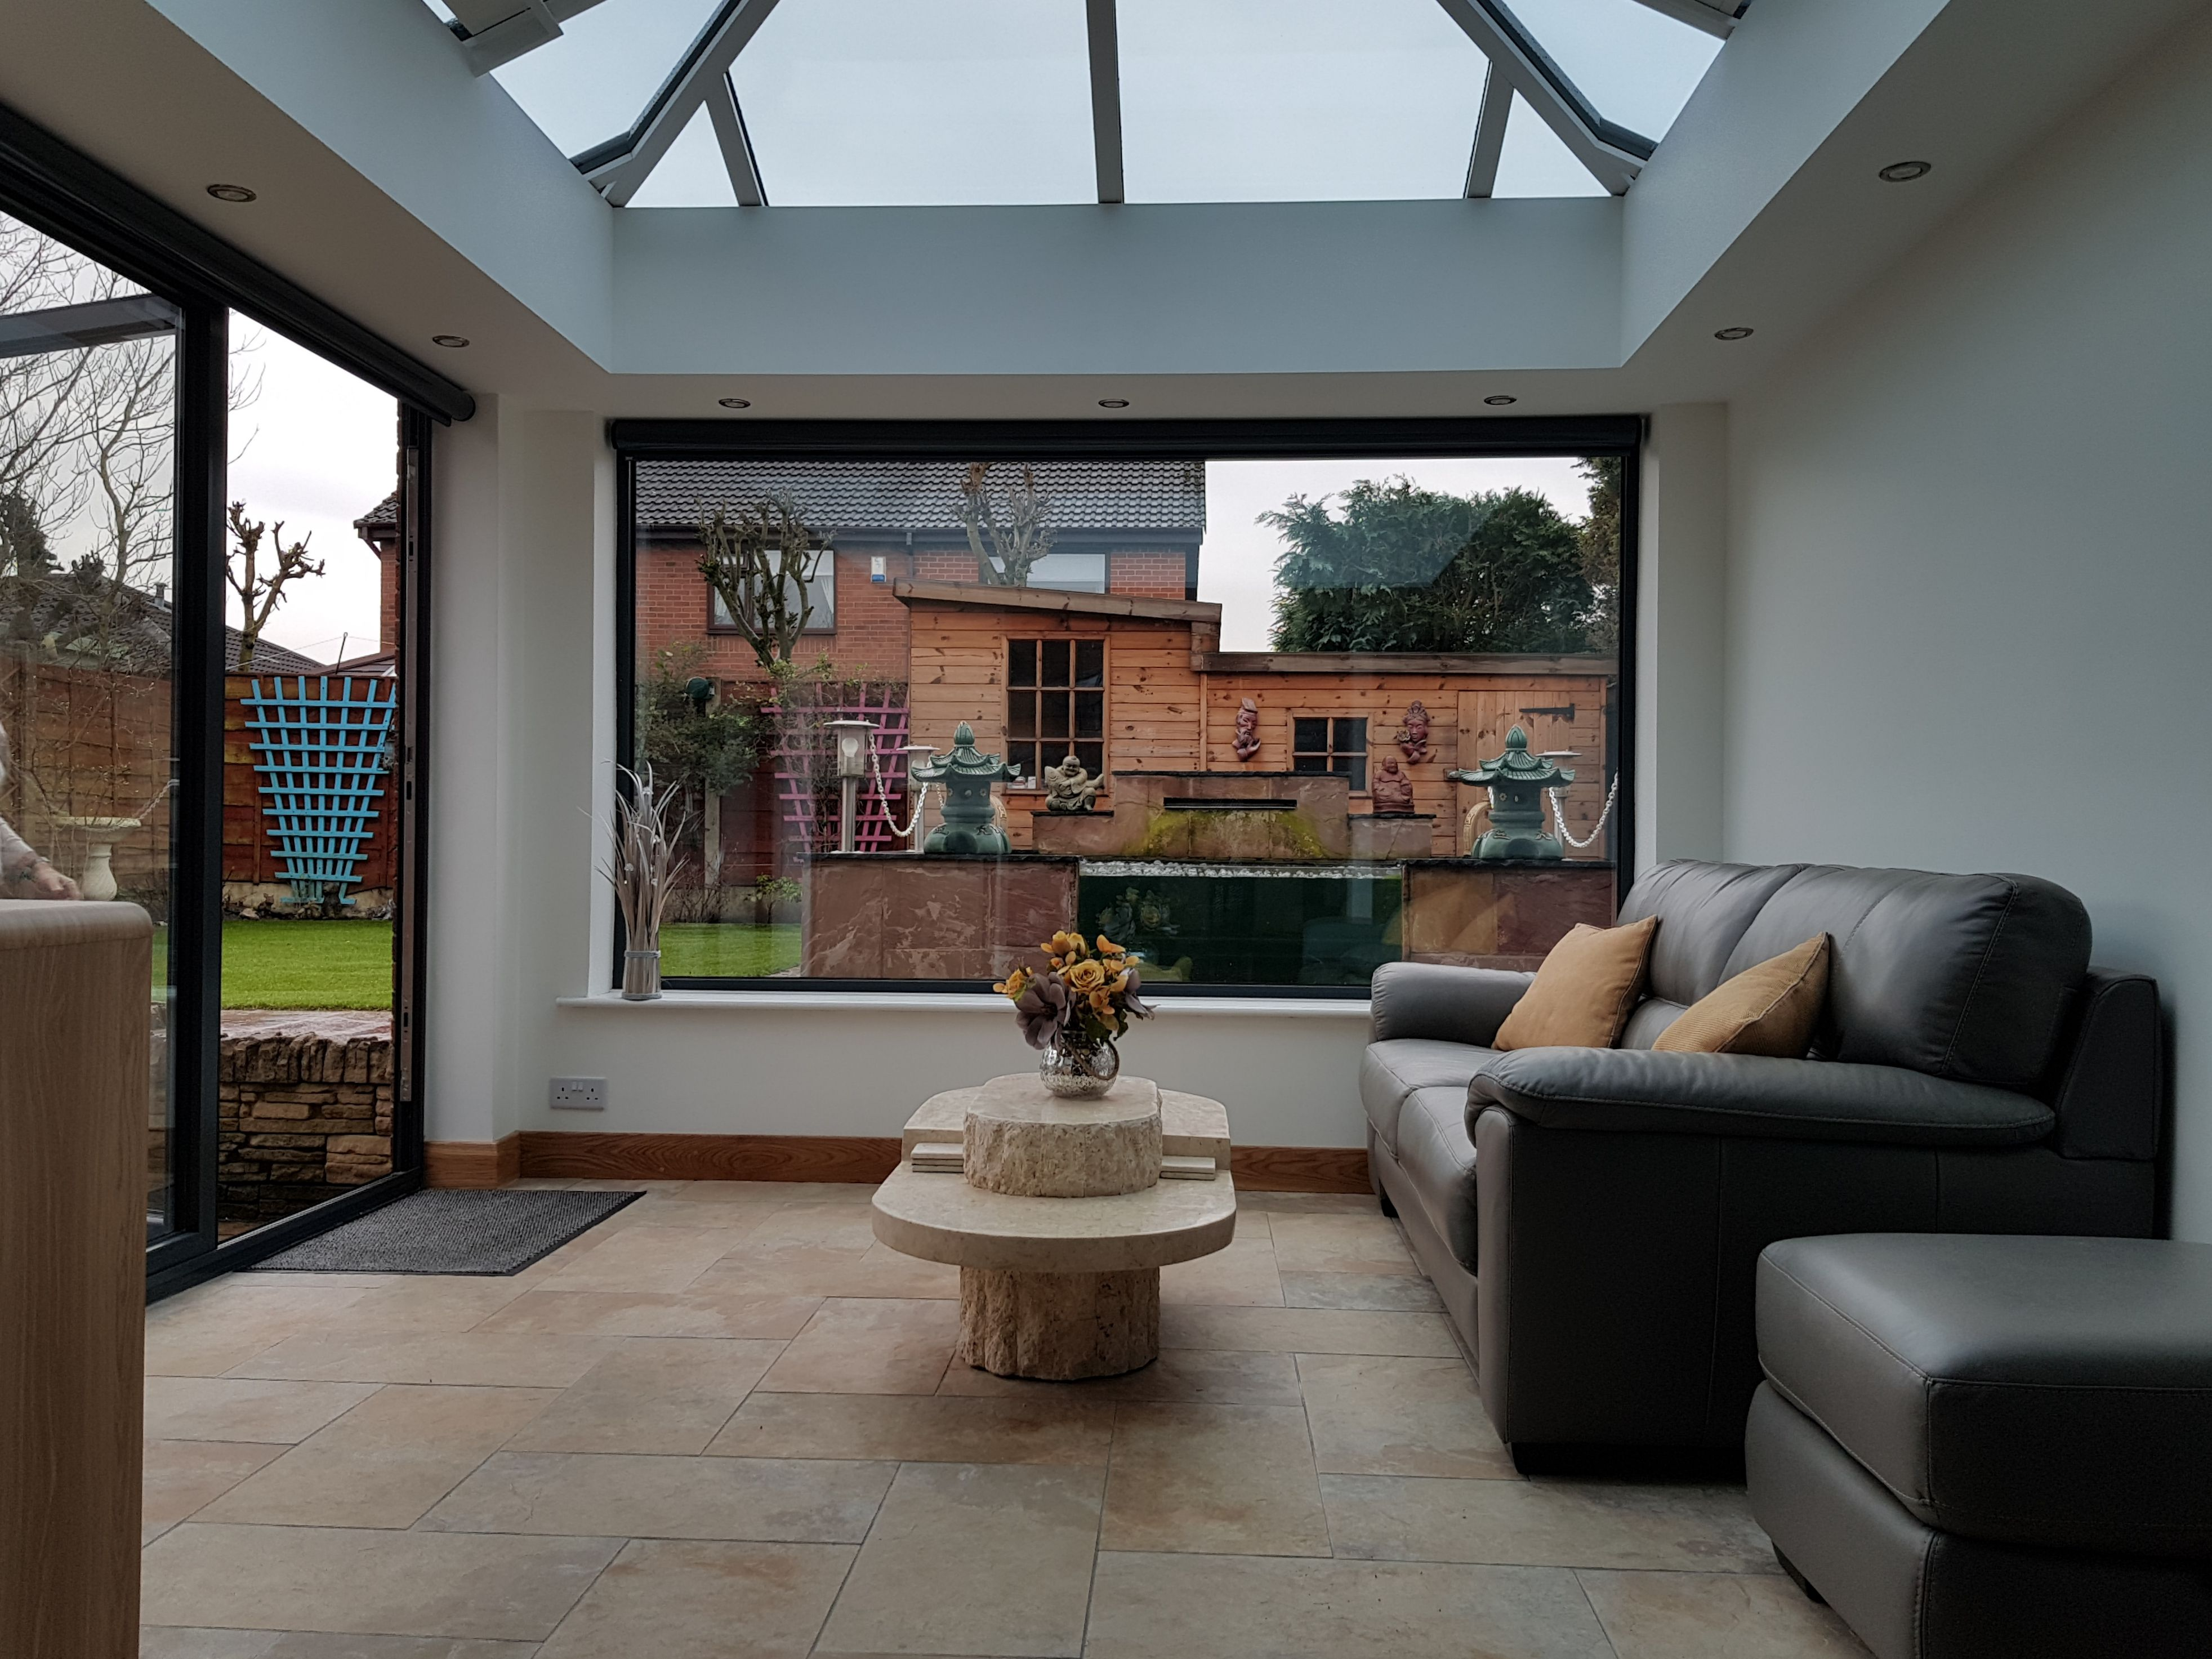 For the best prices on new Conservatories, Orangeries ...